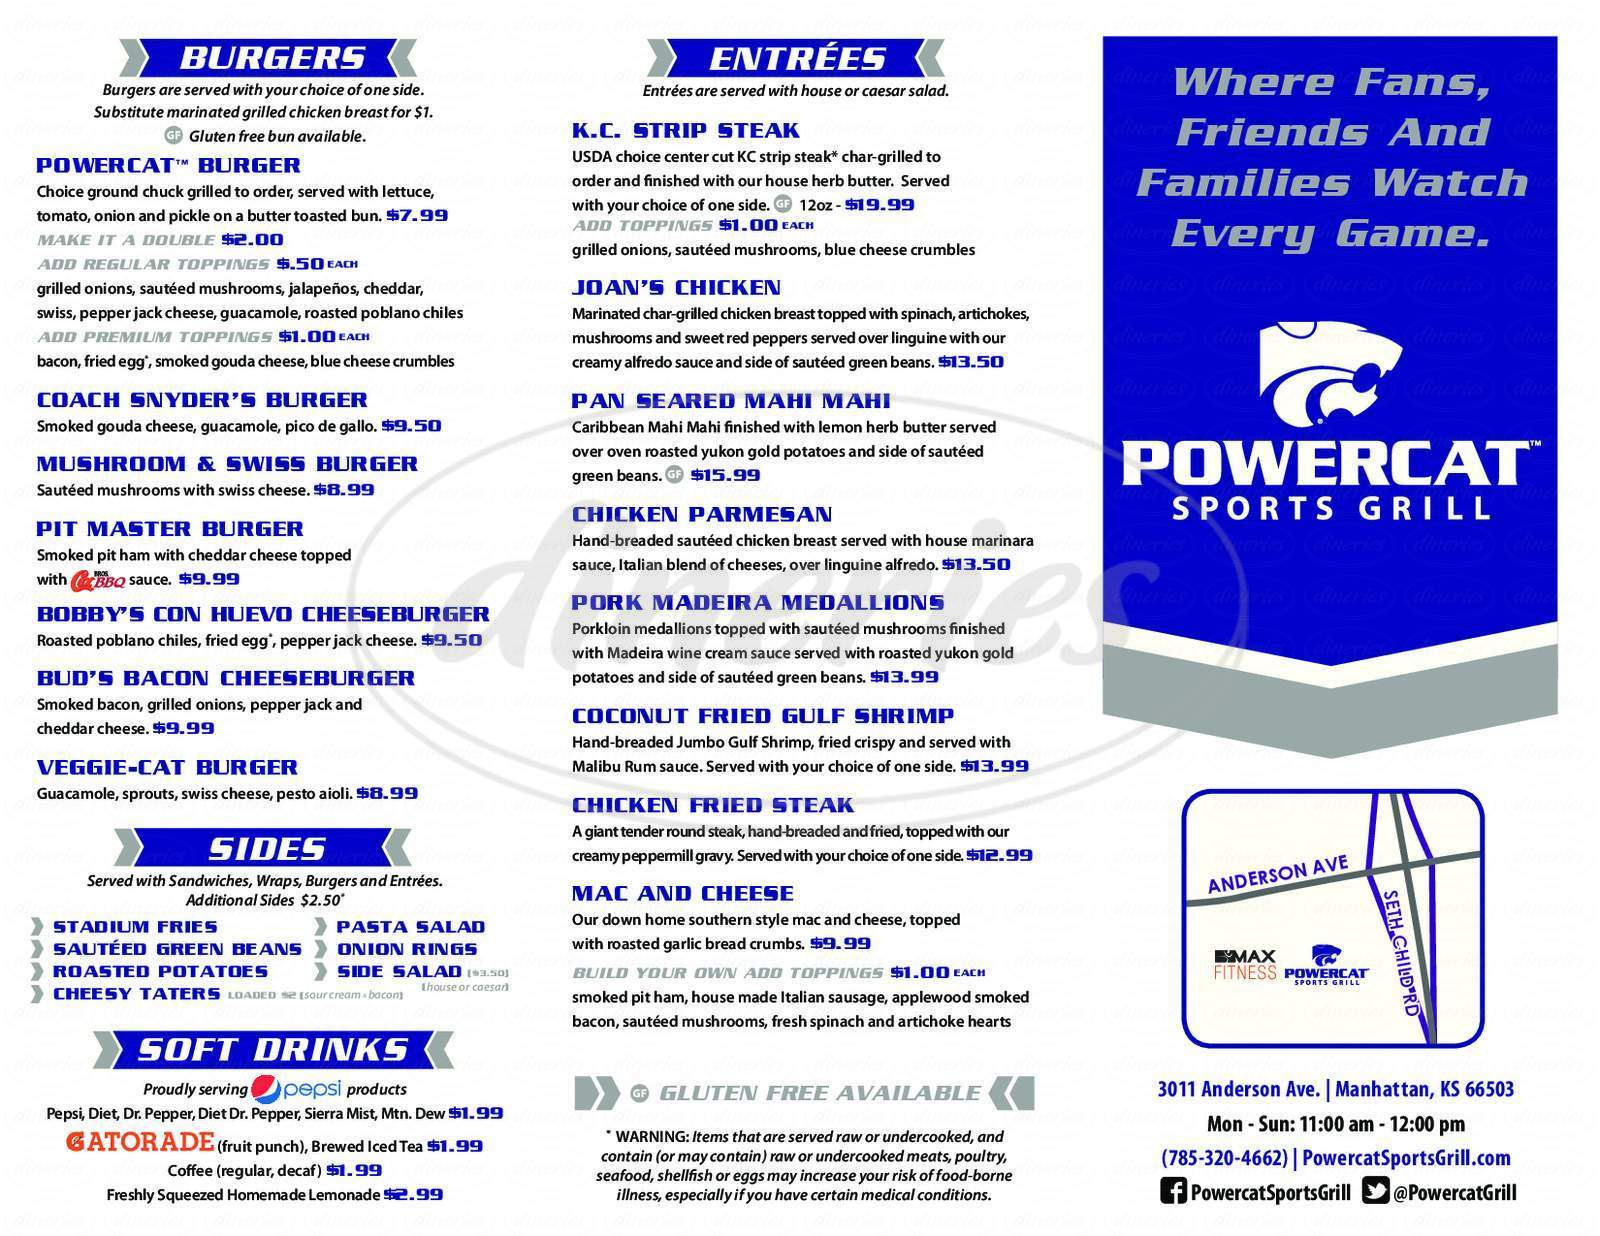 menu for Powercat Sports Grill